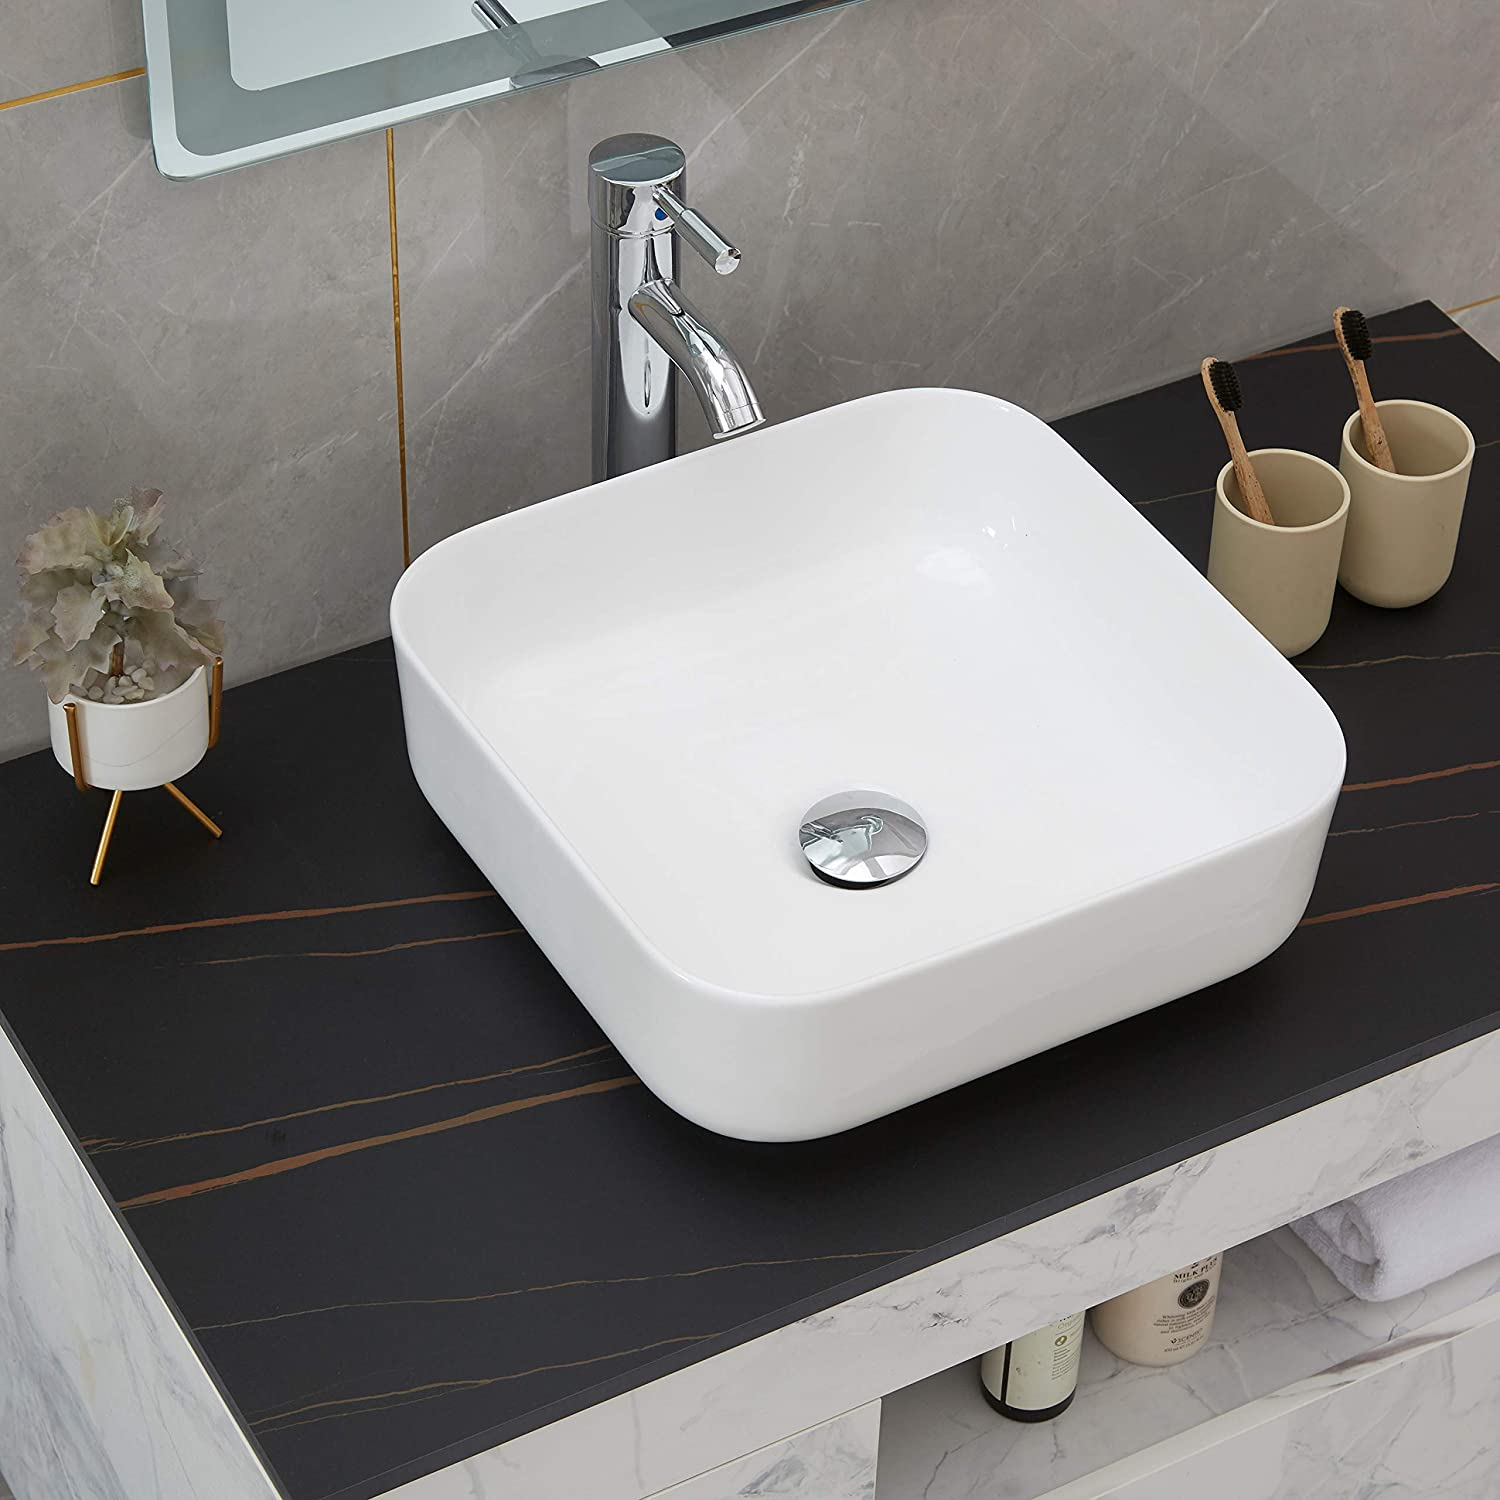 bathroom sink and faucet combo bathroom vanity vessel sink white rectangle above counter porcelain ceramic bathroom vessel sink art basin faucet